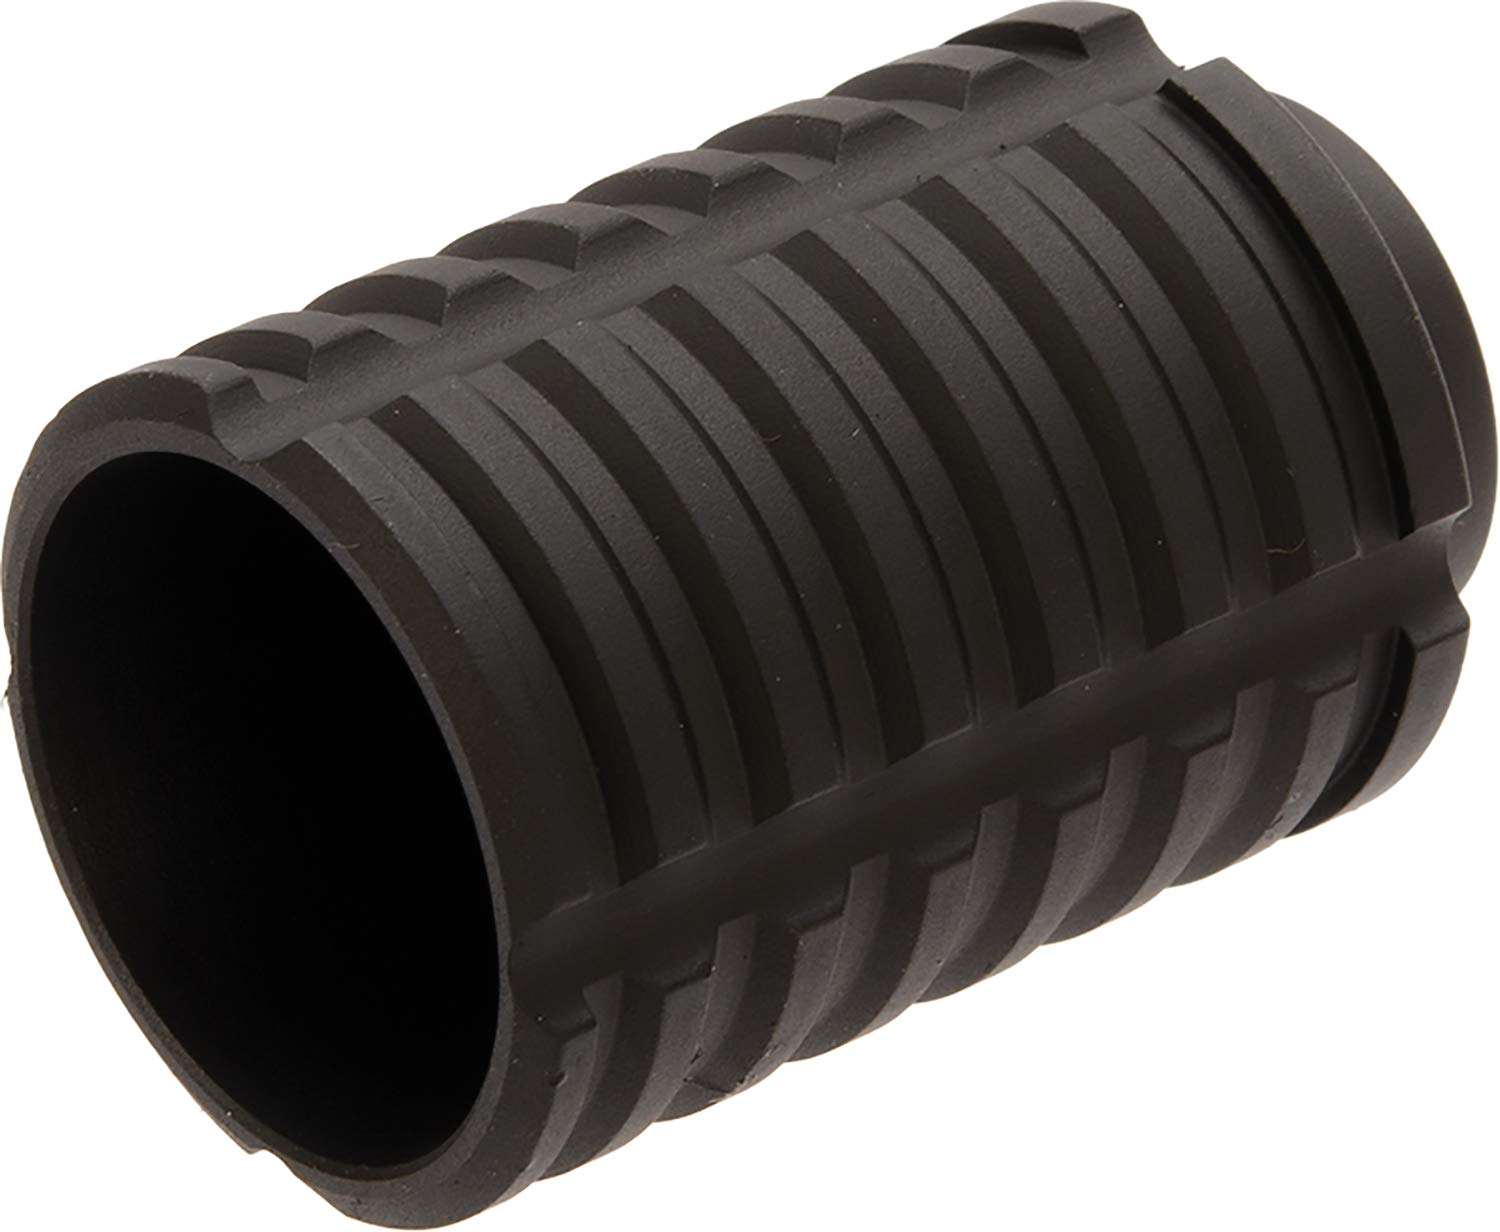 Evike APS Sound Amplifier Muzzle Device for Airsoft Guns (Model: Type B) by Evike